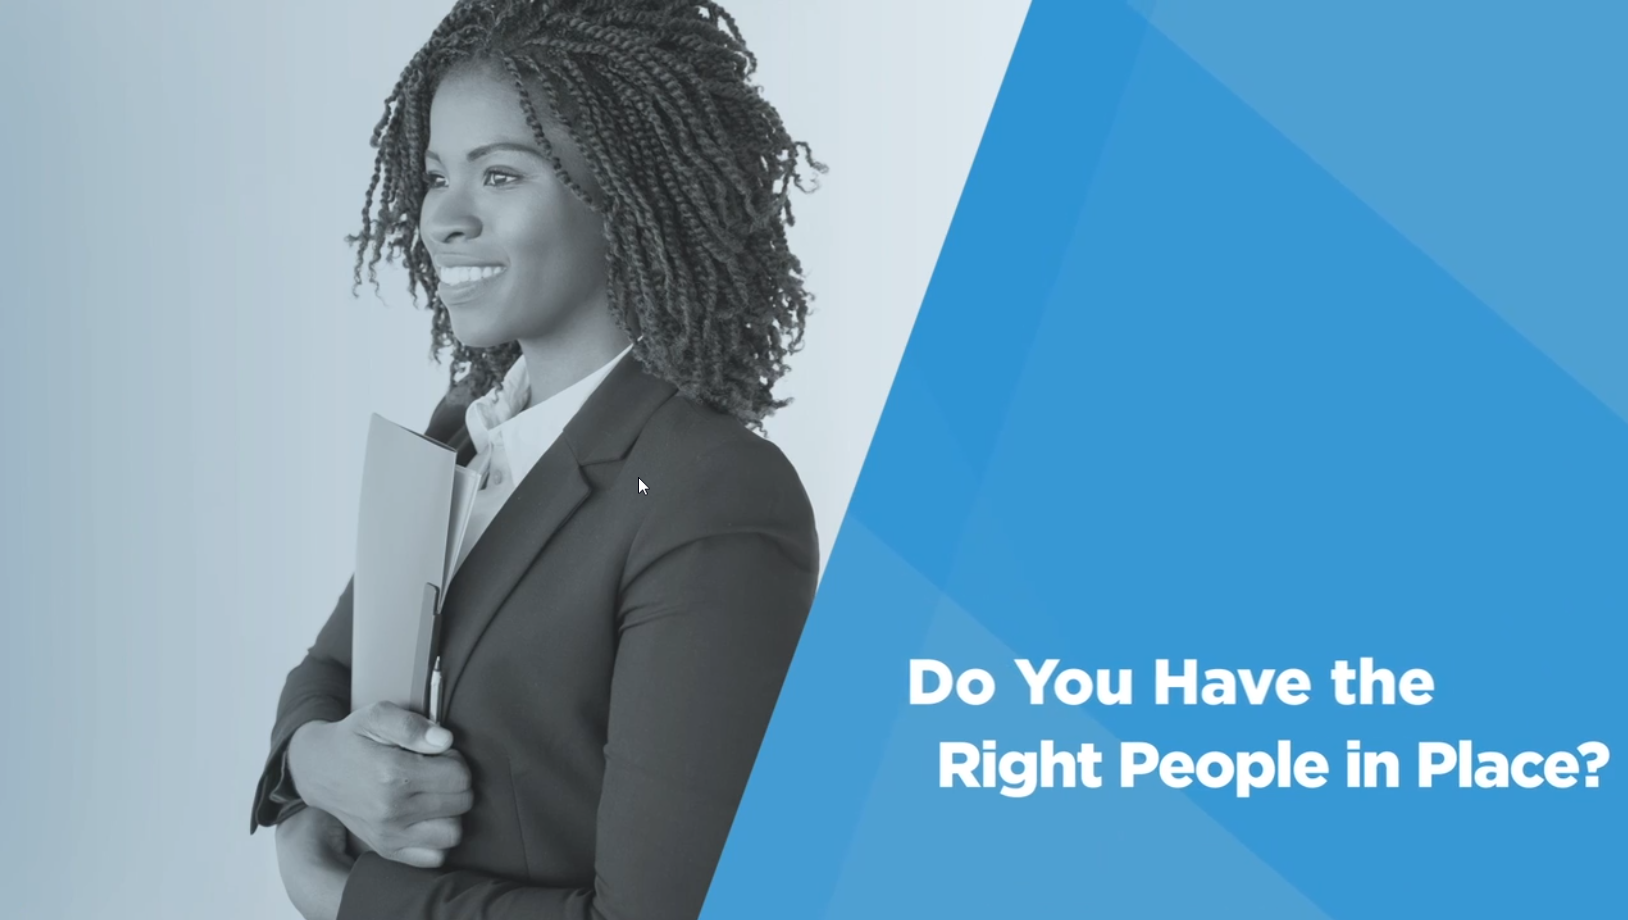 Video: Be a Better Leader: Have the Right People in Place